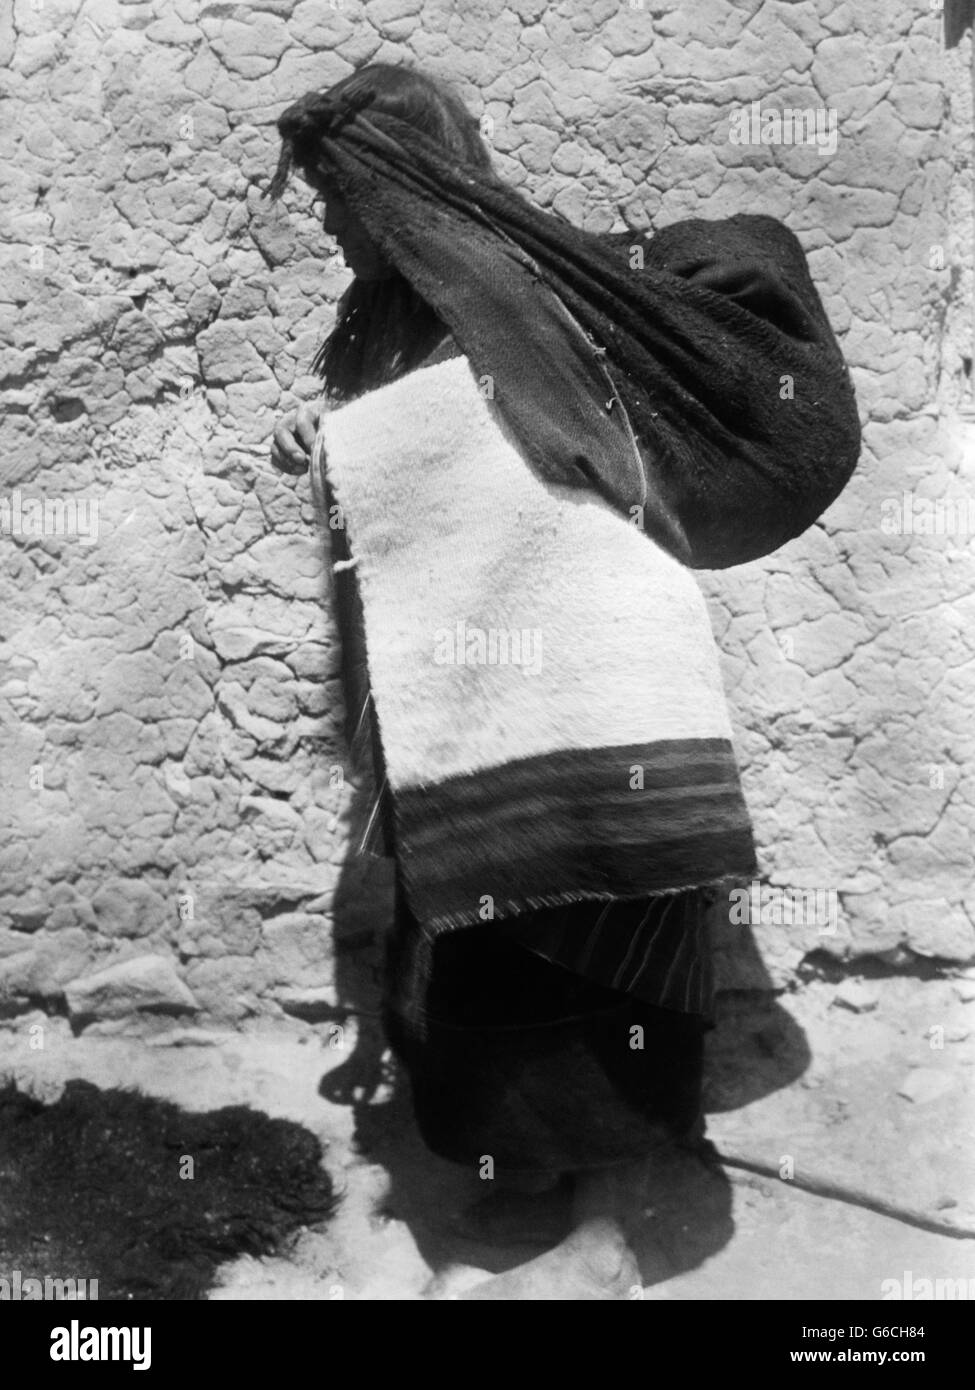 1890s NATIVE AMERICAN INDIAN WOMAN WEARING BLANKET USING A TUMPLINE TO CARRY A BUNDLE ON HER BACK - Stock Image